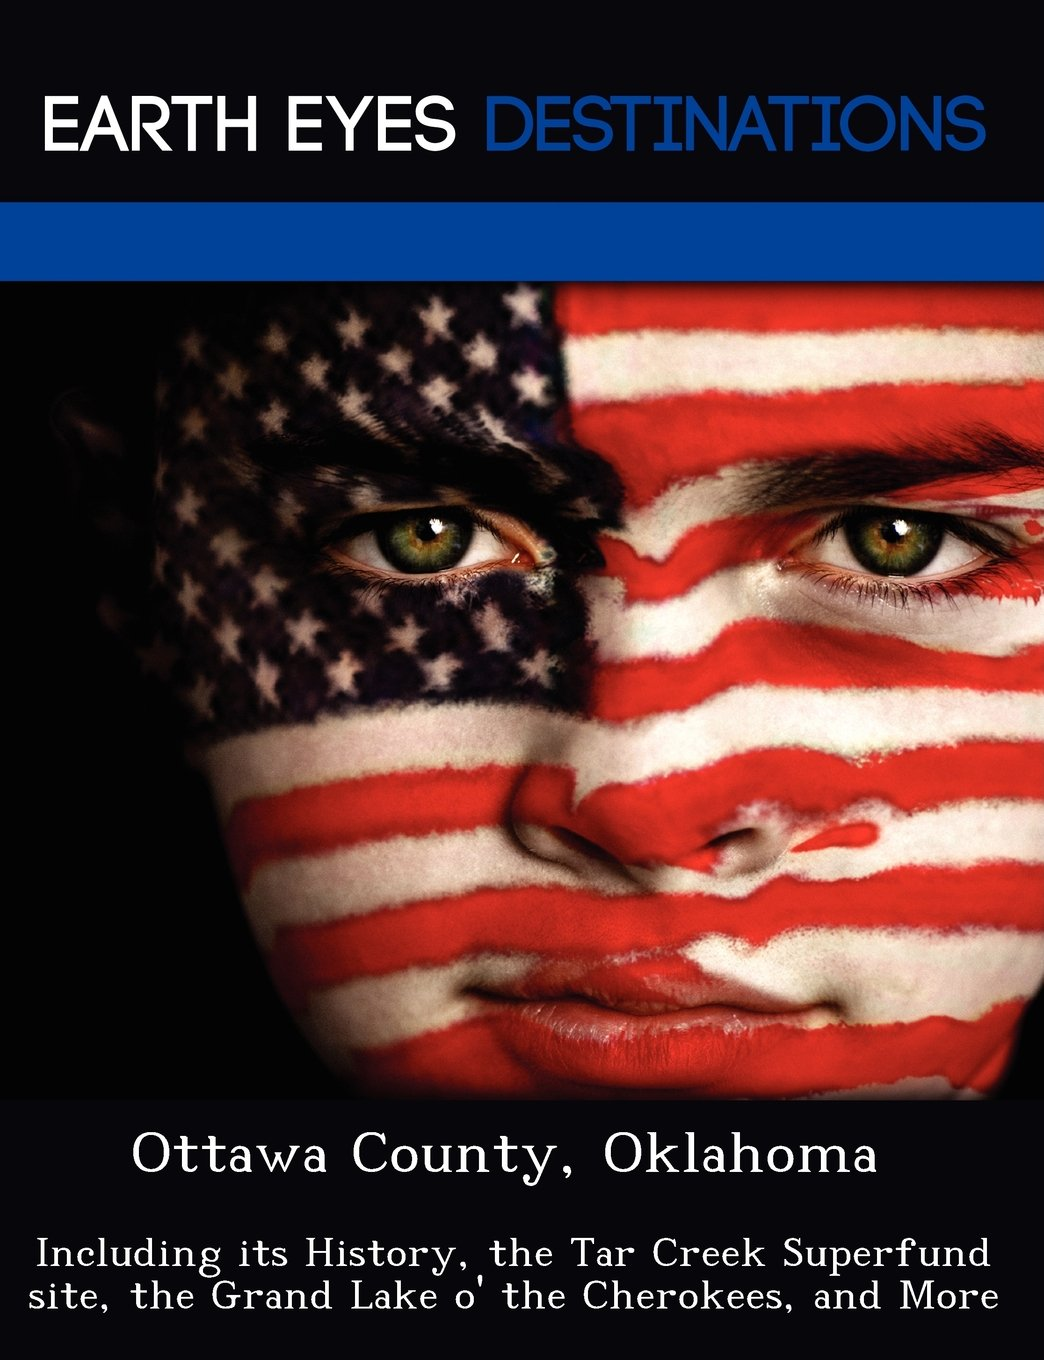 Ottawa County, Oklahoma: Including its History, the Tar Creek Superfund site, the Grand Lake o' the Cherokees, and More